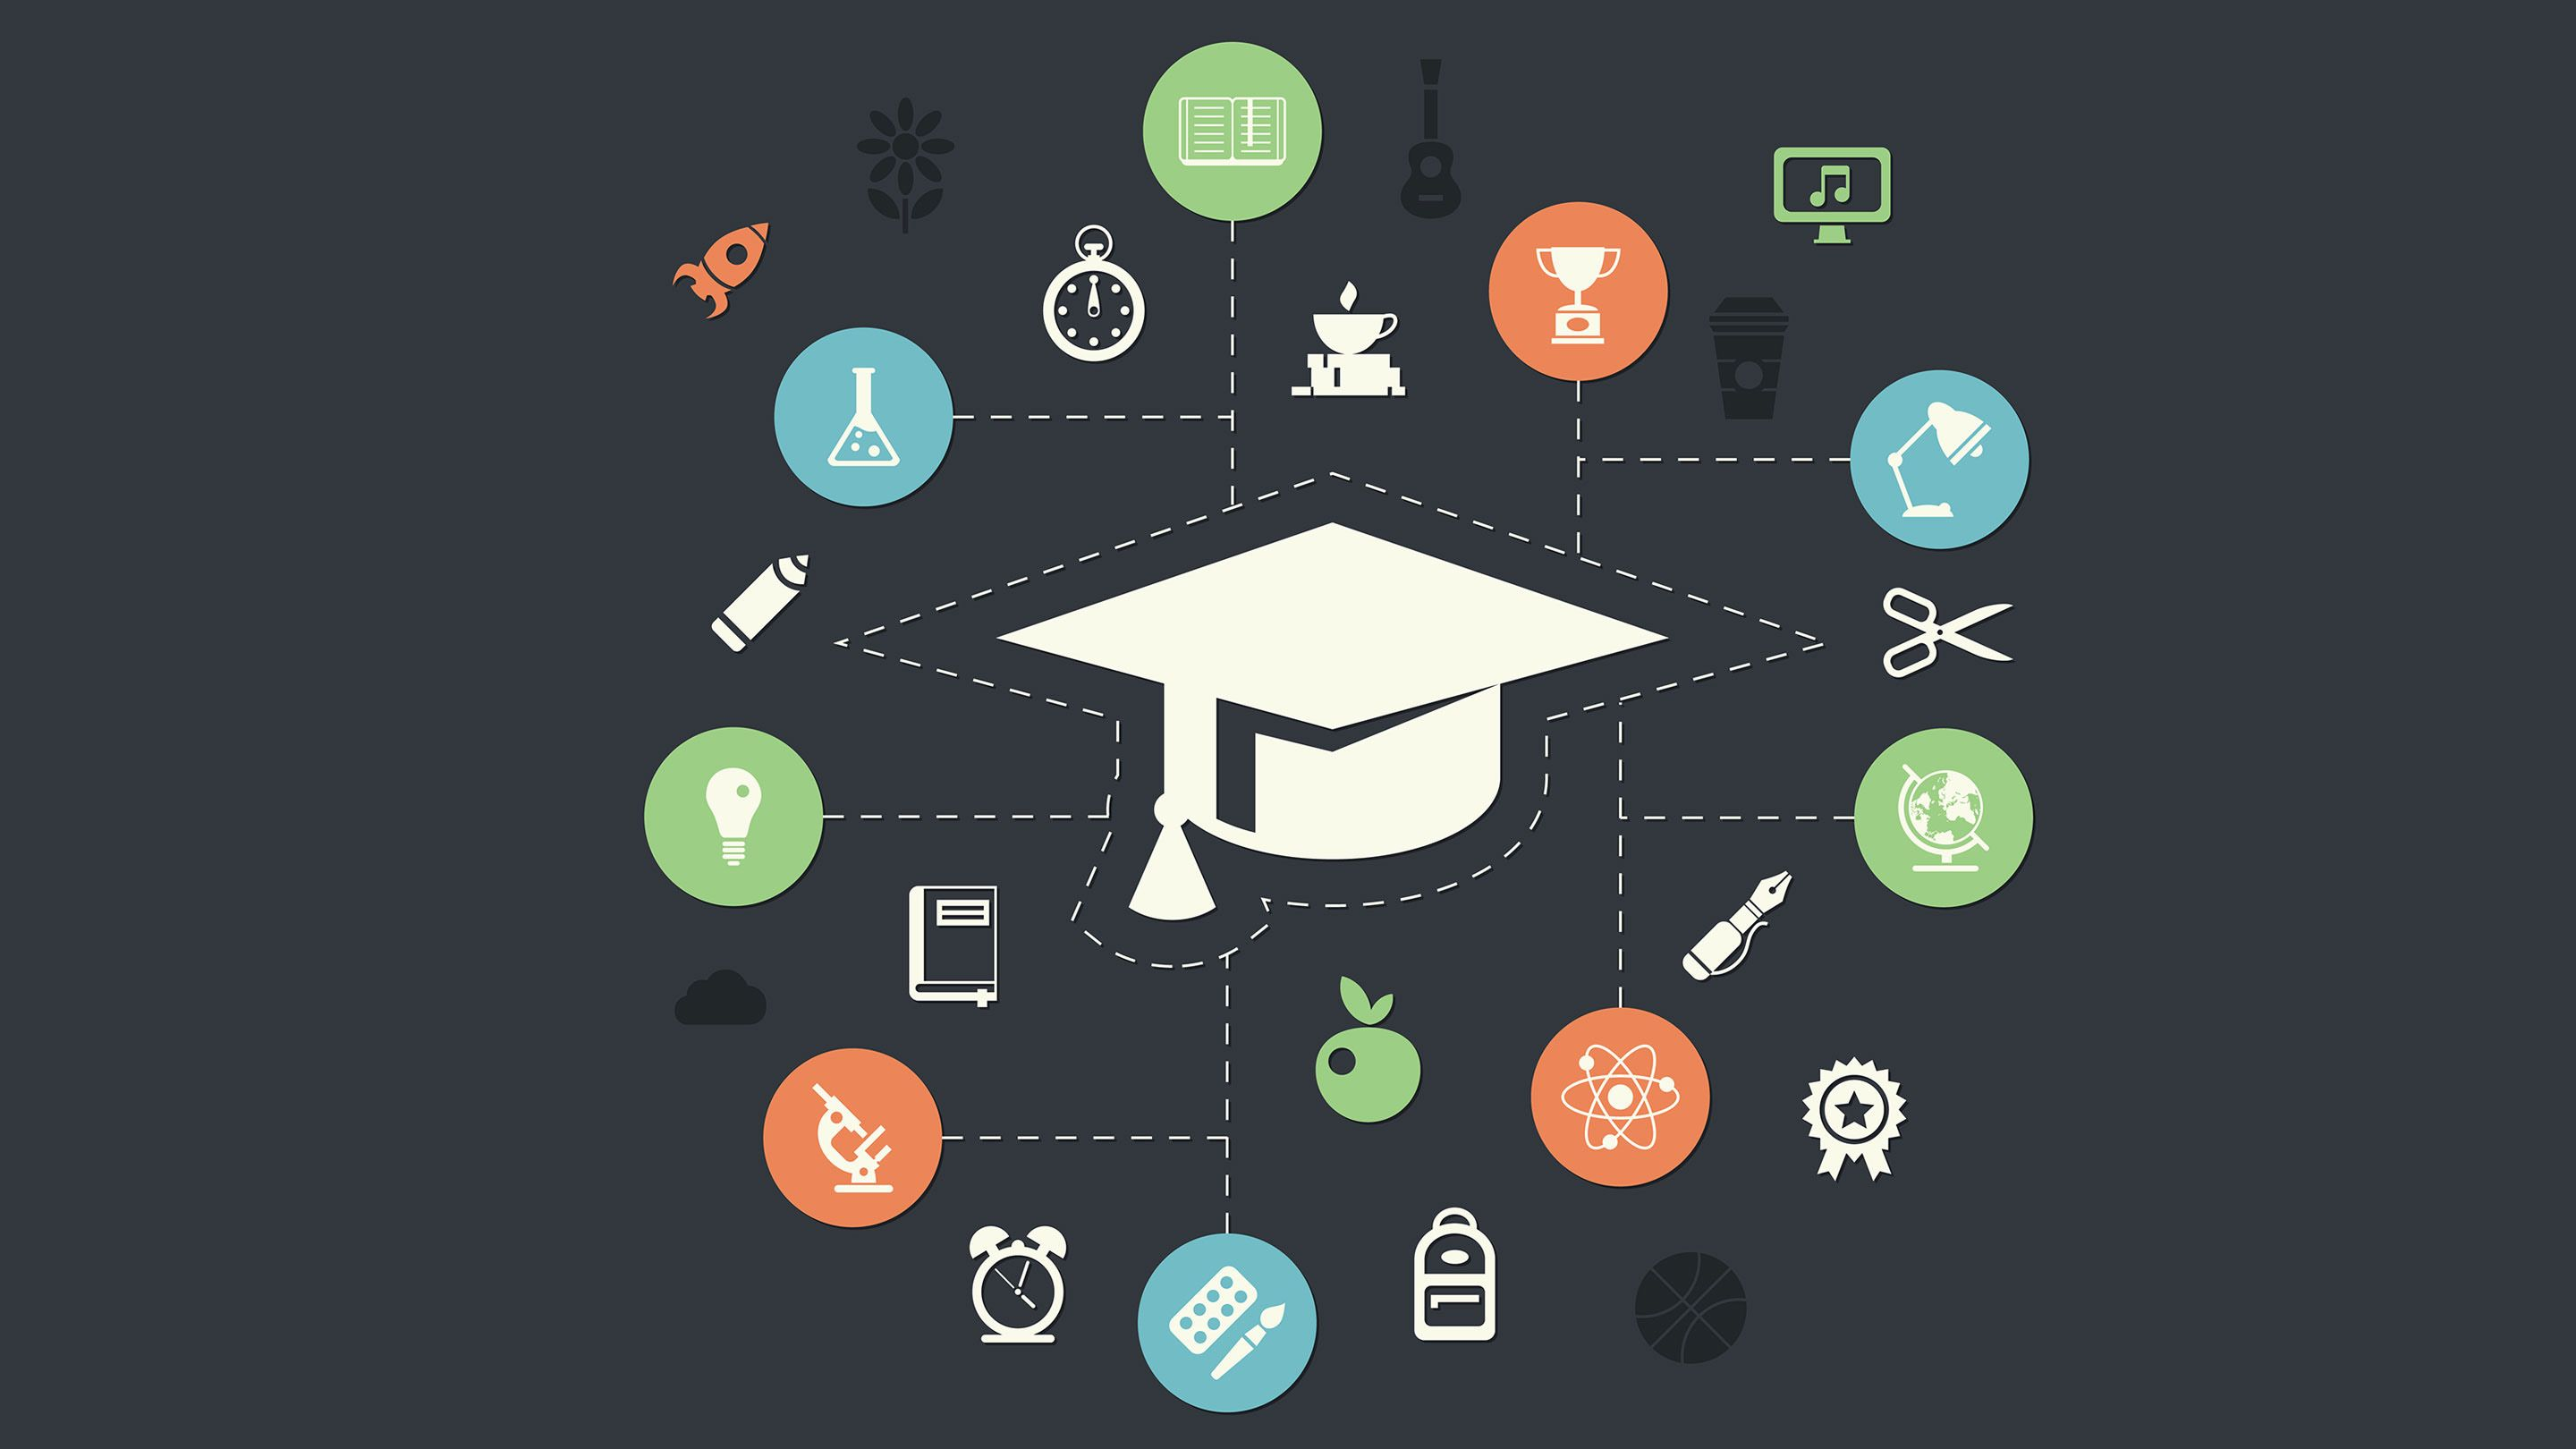 An illustration of a graduation cap surrounded by icons of learning.